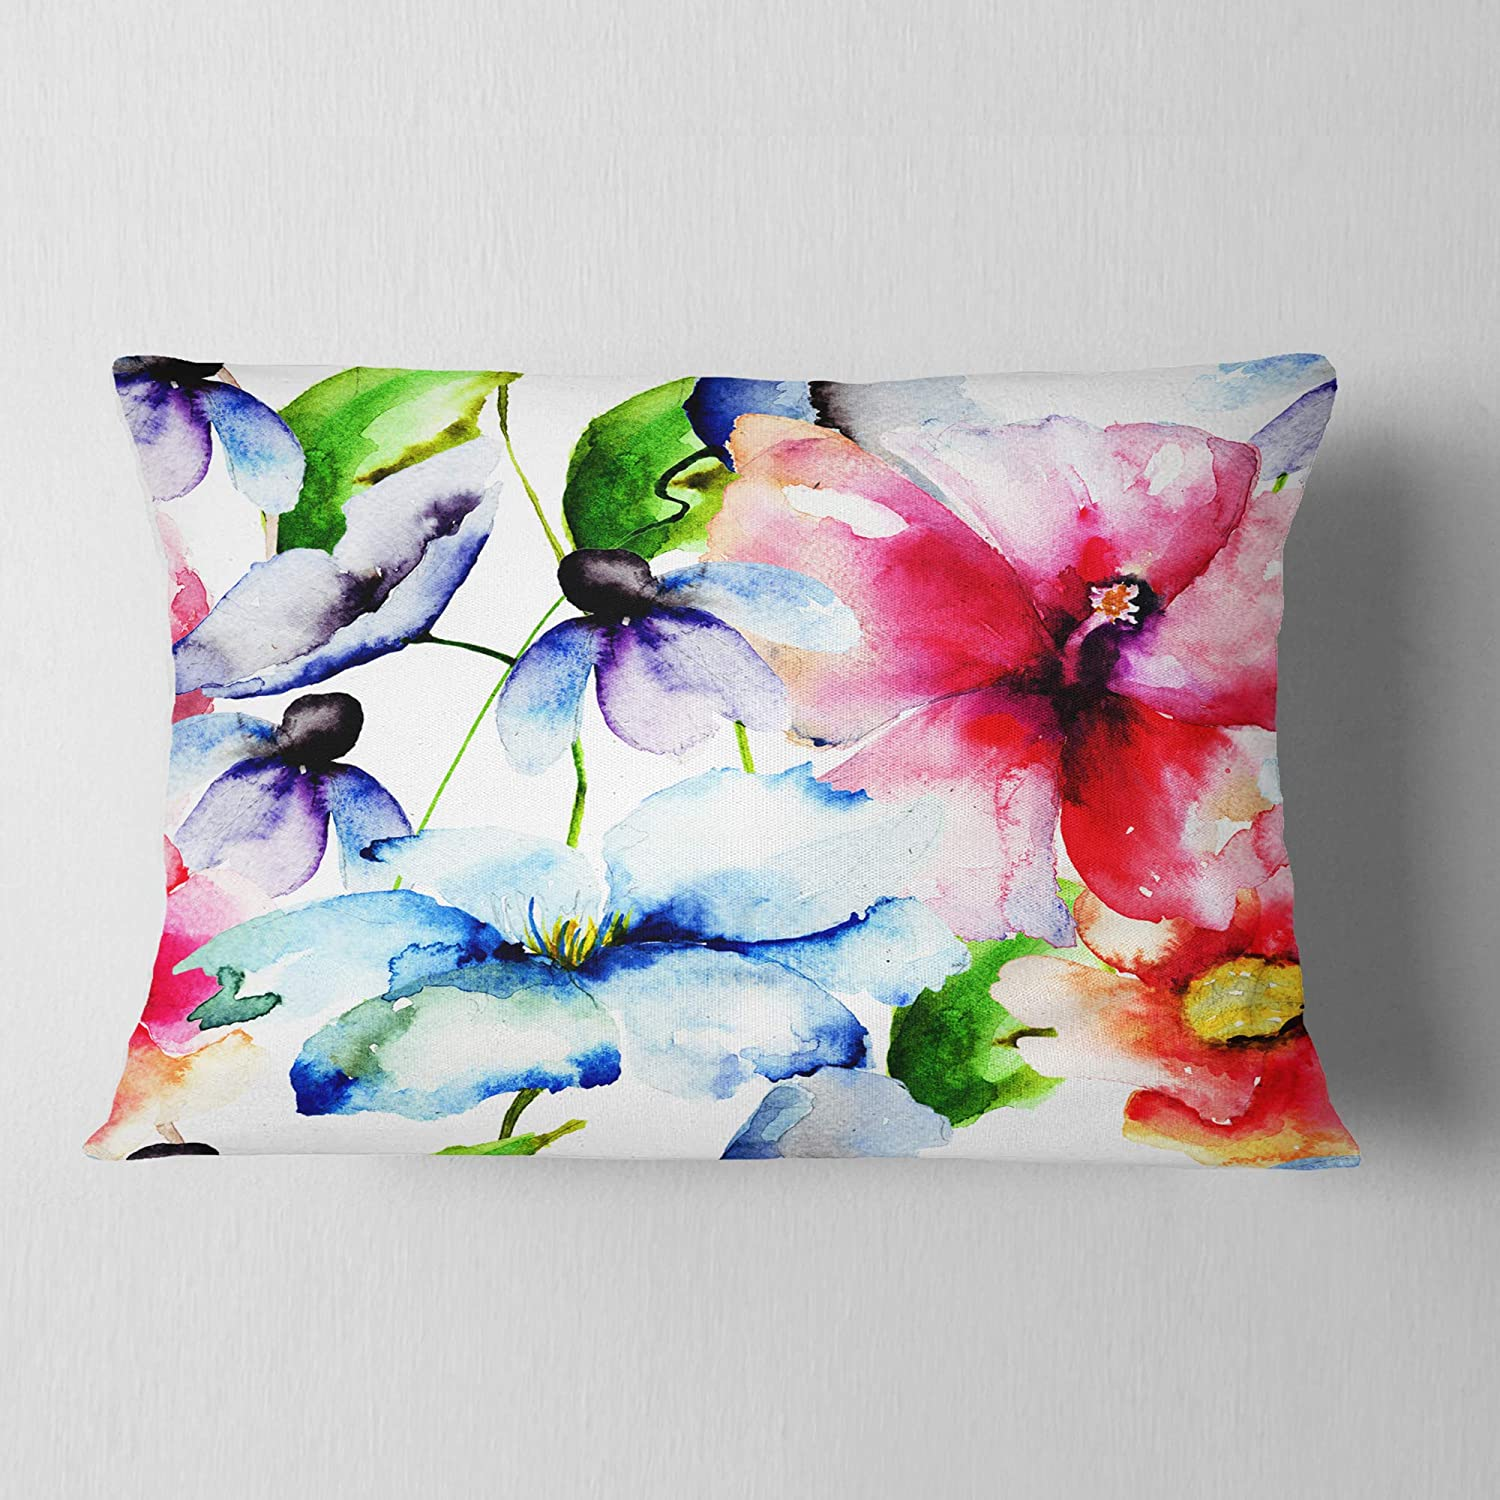 Designart CU6247-12-20 Watercolor Flowers Everywhere' Floral Throw Round Cushion Pillow Cover for Living Room, Sofa, 12 in. x 20 in. in, Insert Printed On Both Side